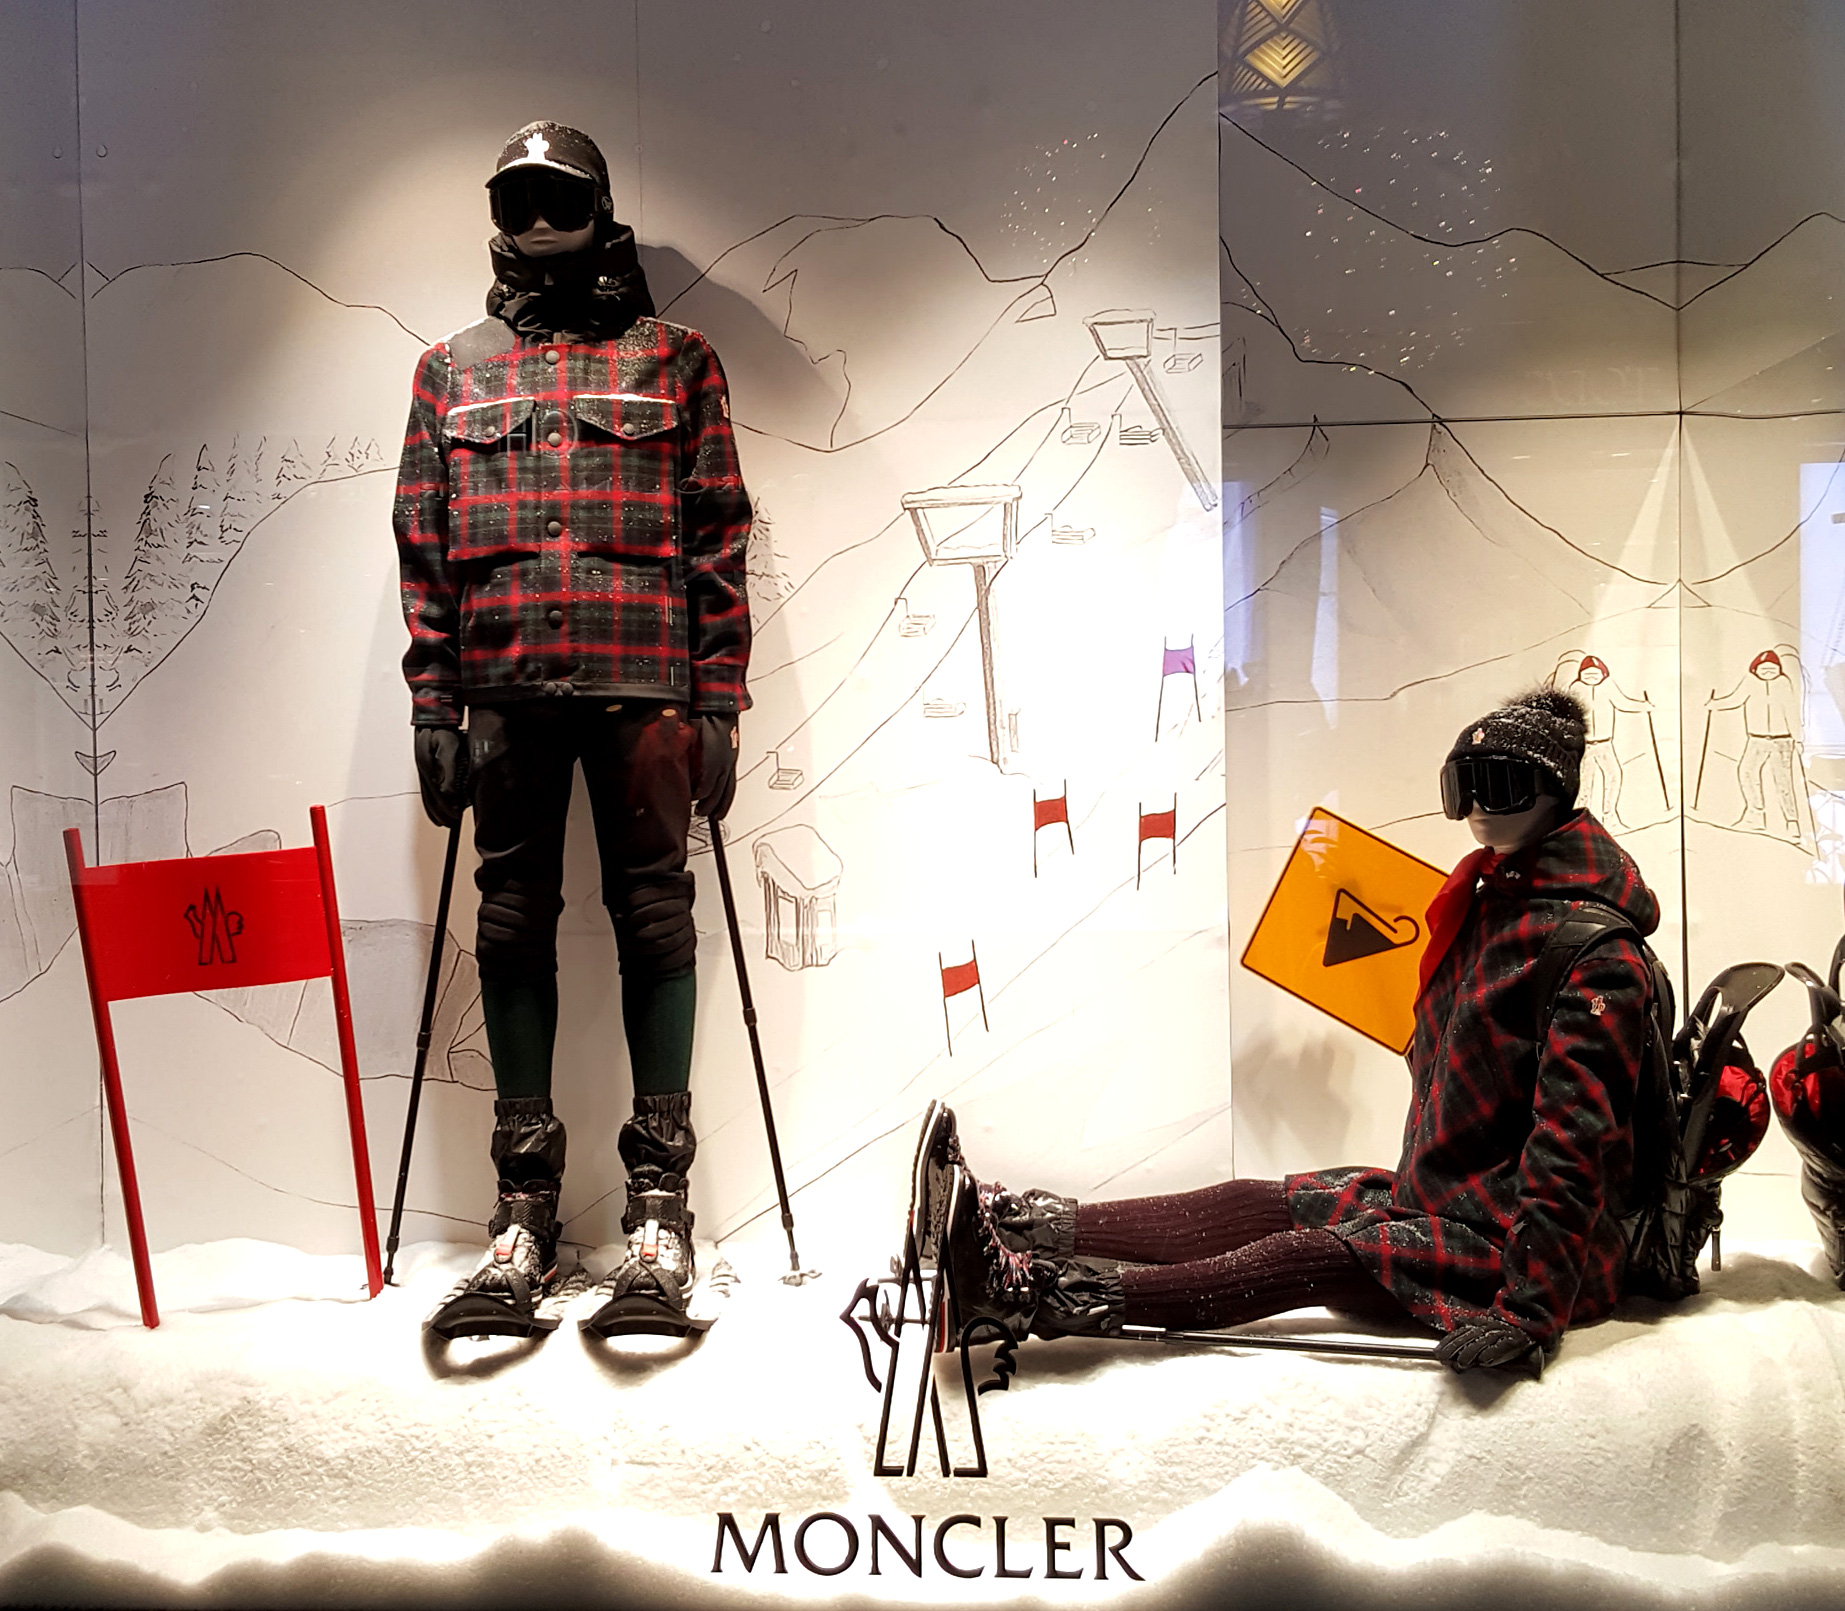 Monclaire has a background image with a ski track and also a fashion layout for winter in this window display.